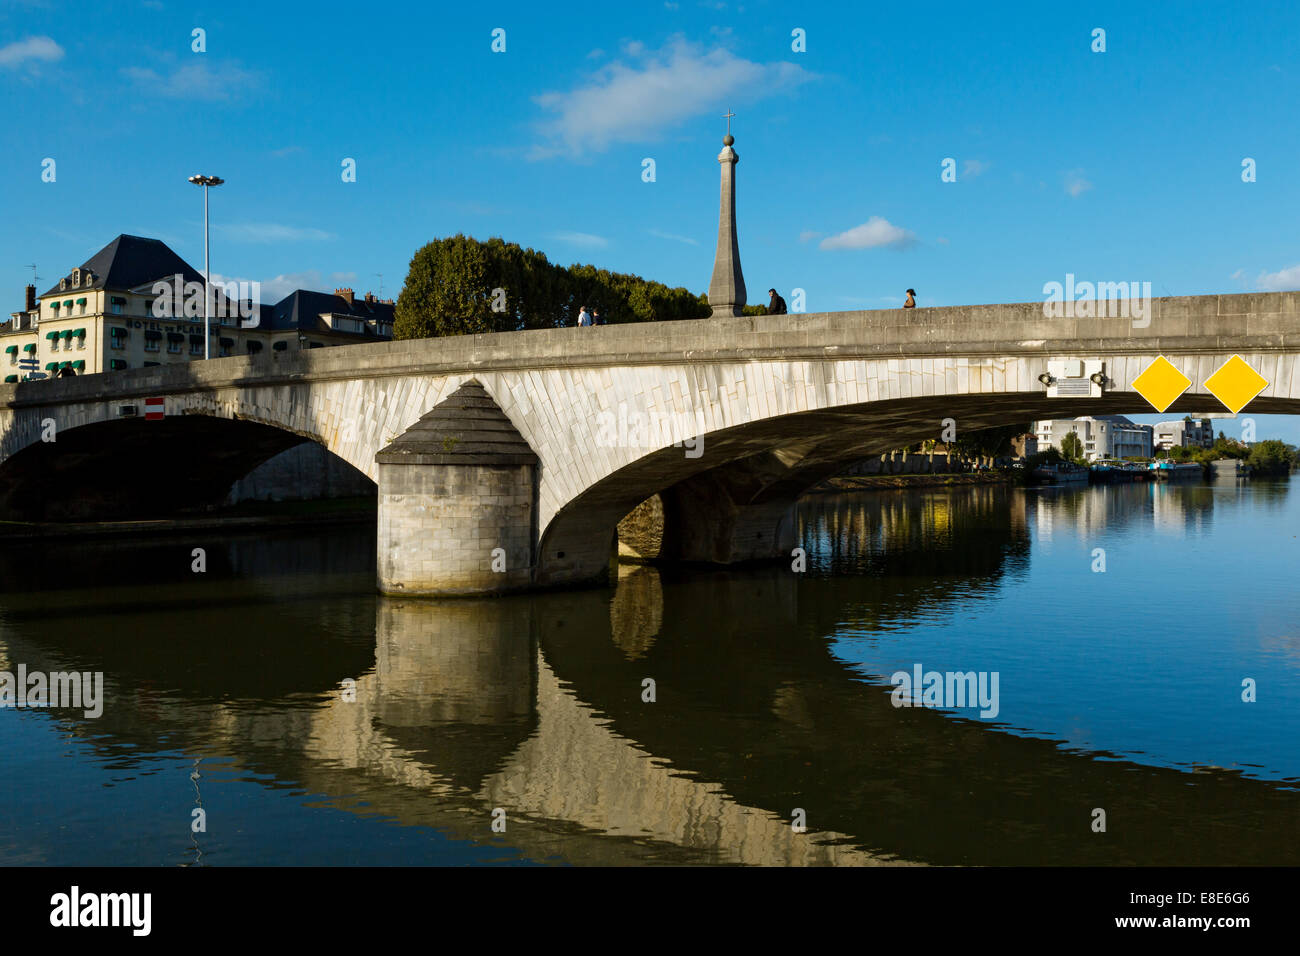 The River Oise, Compiegne, Picardy, France Stock Photo